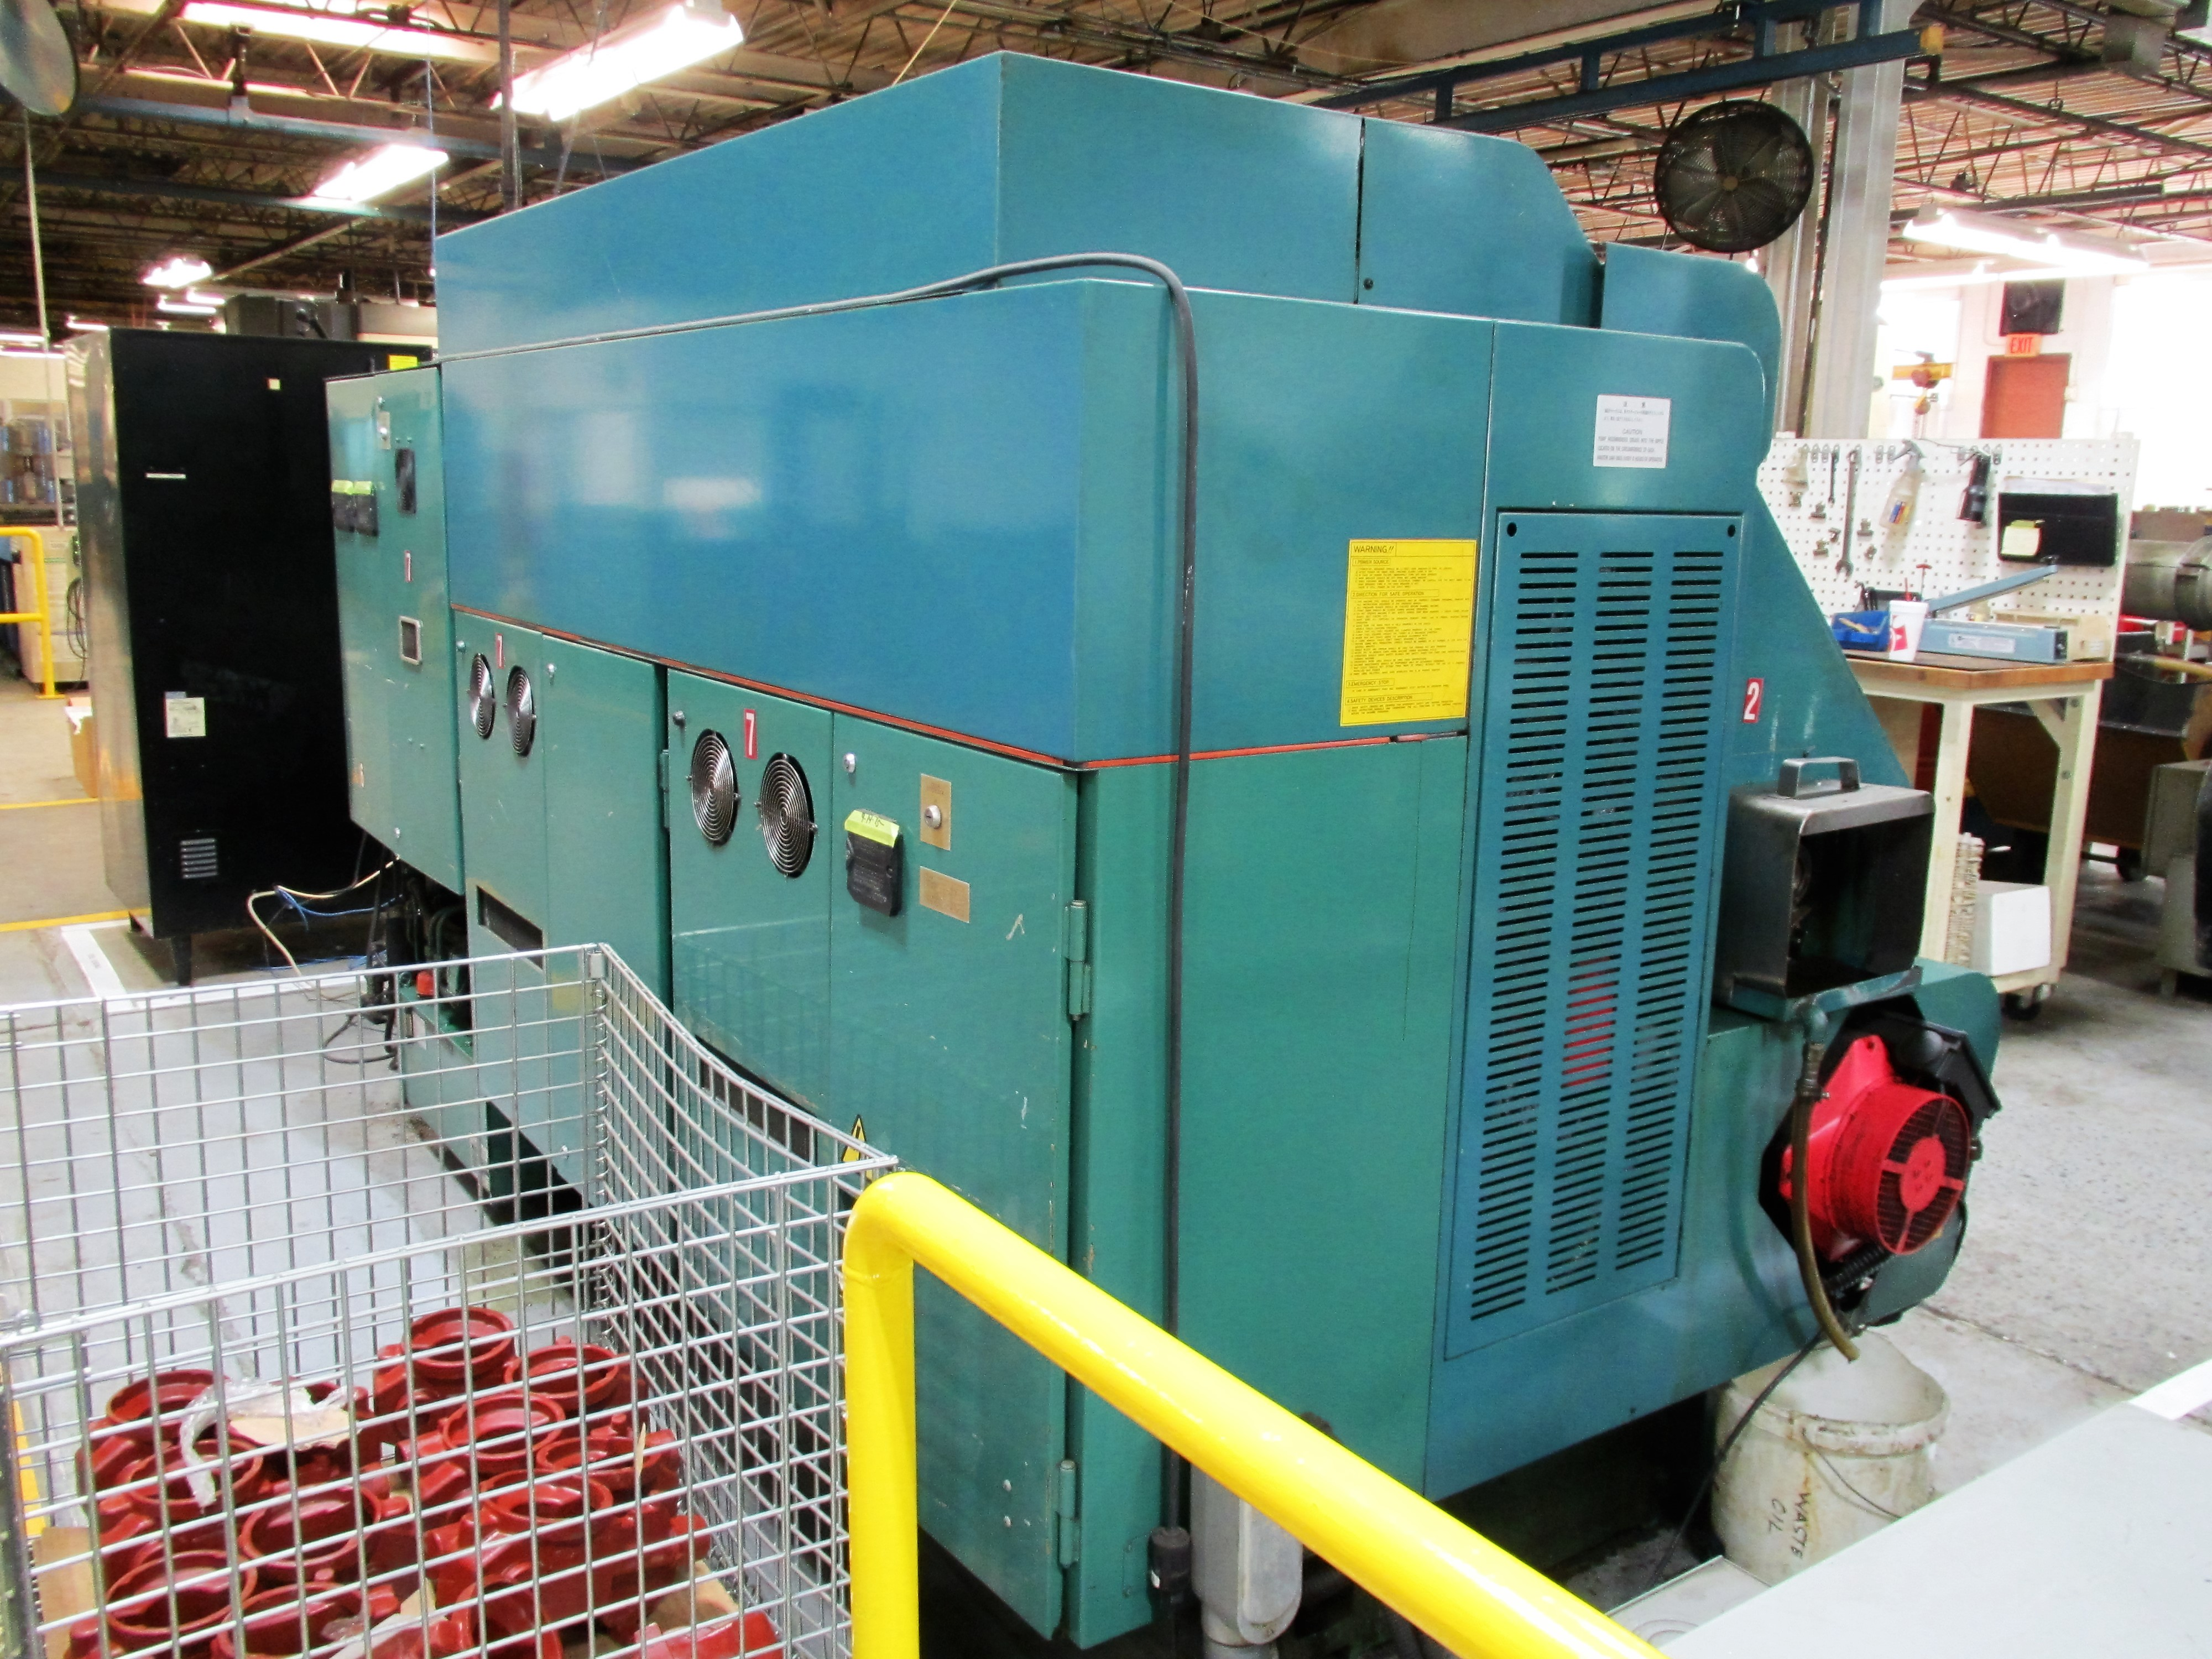 NAKAMURA TOME TW-20 6-AXIS CNC TWIN SPINDLE TURNING CENTER - Image 9 of 17